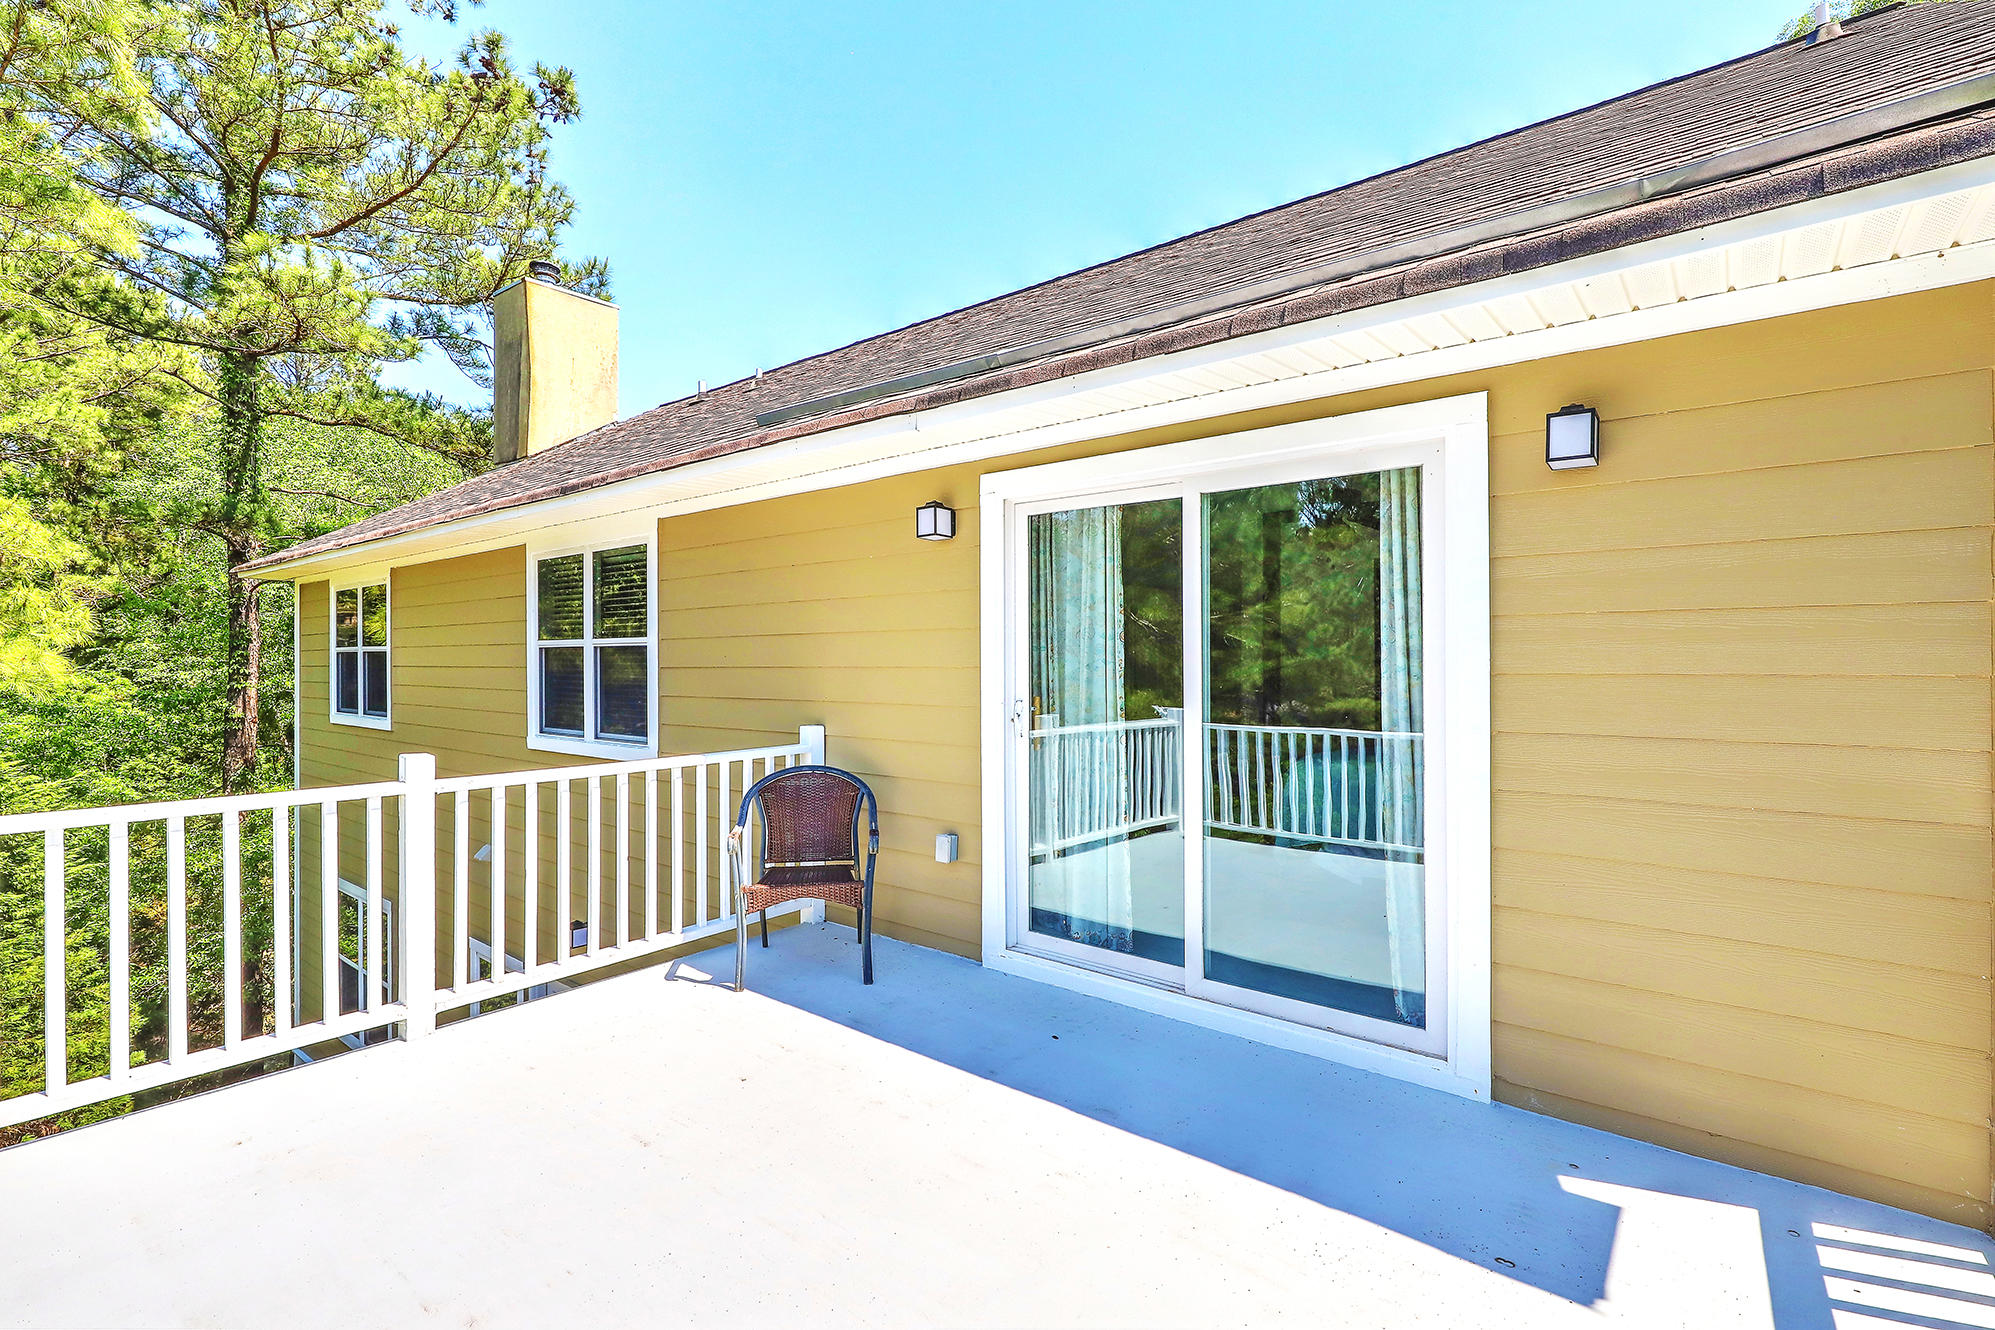 Stono Ferry Homes For Sale - 5104 St Ann, Hollywood, SC - 3